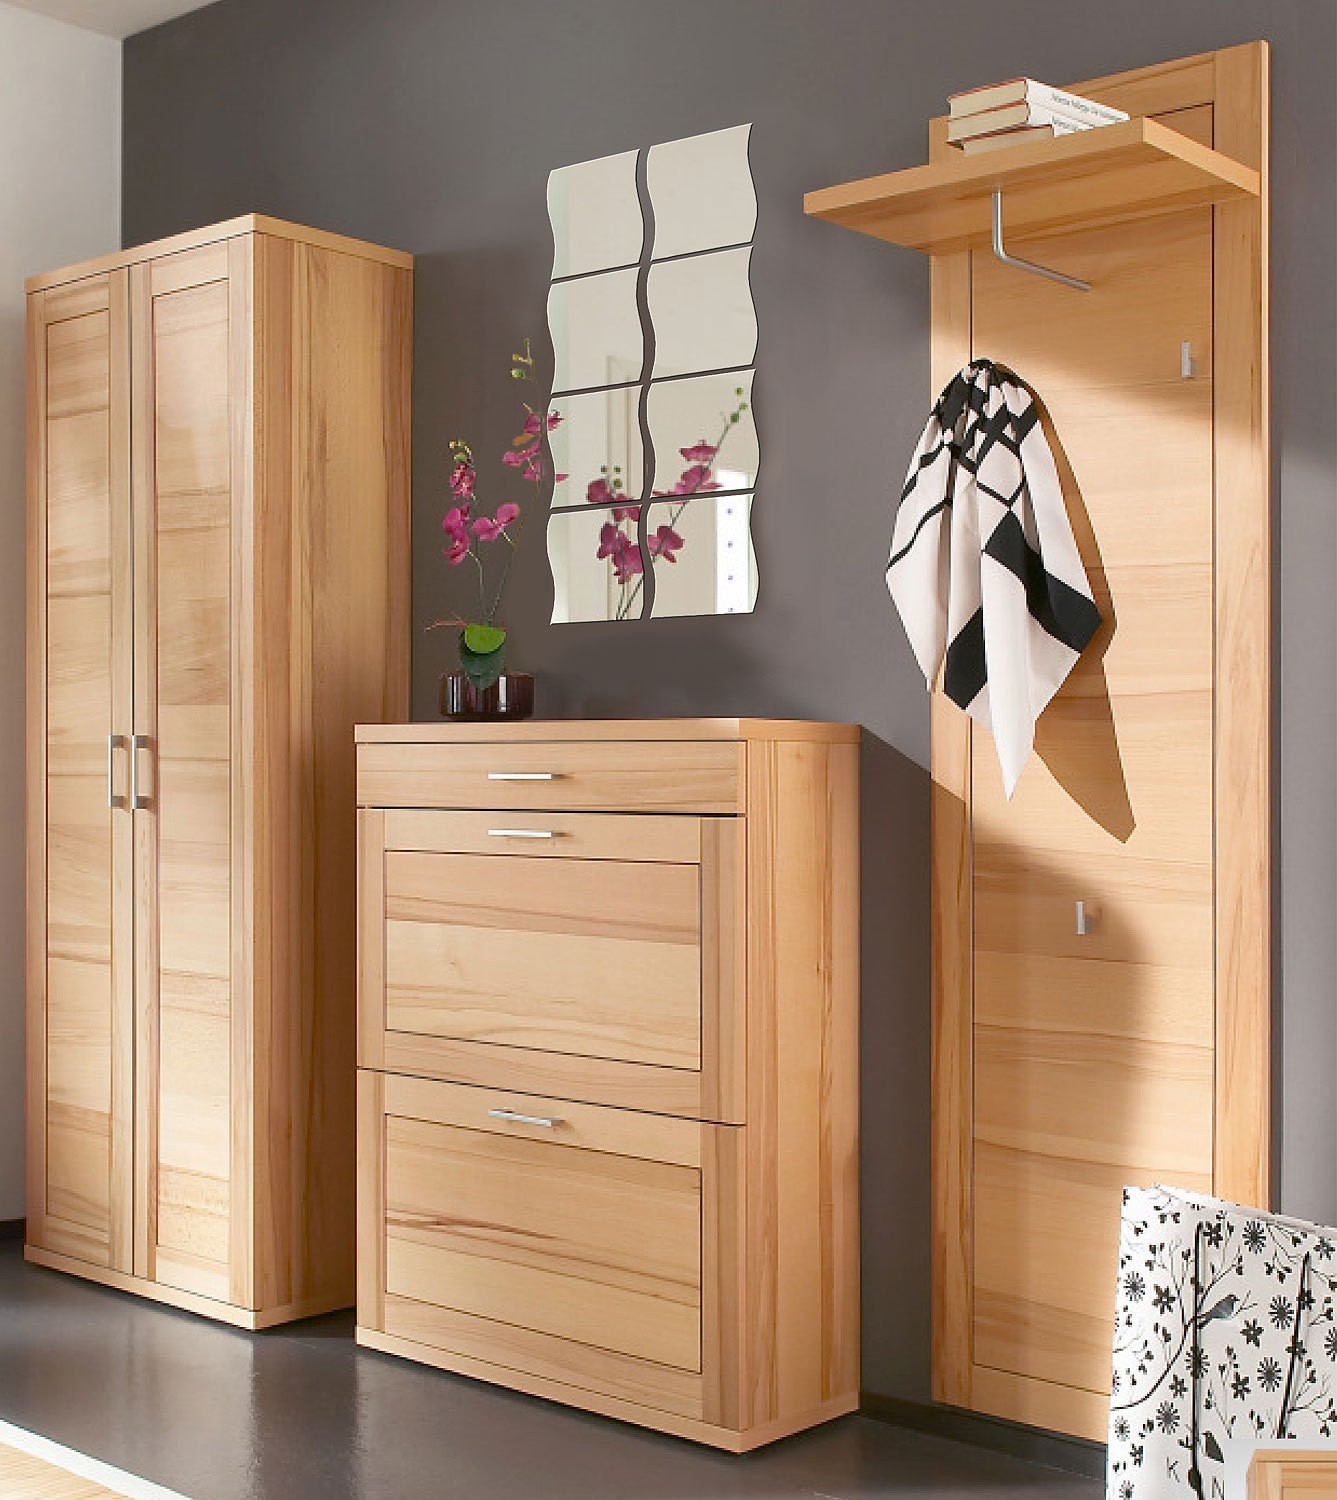 4x 4stk spiegelfliesen je 20x20cm in wellenform wohnen spiegel. Black Bedroom Furniture Sets. Home Design Ideas